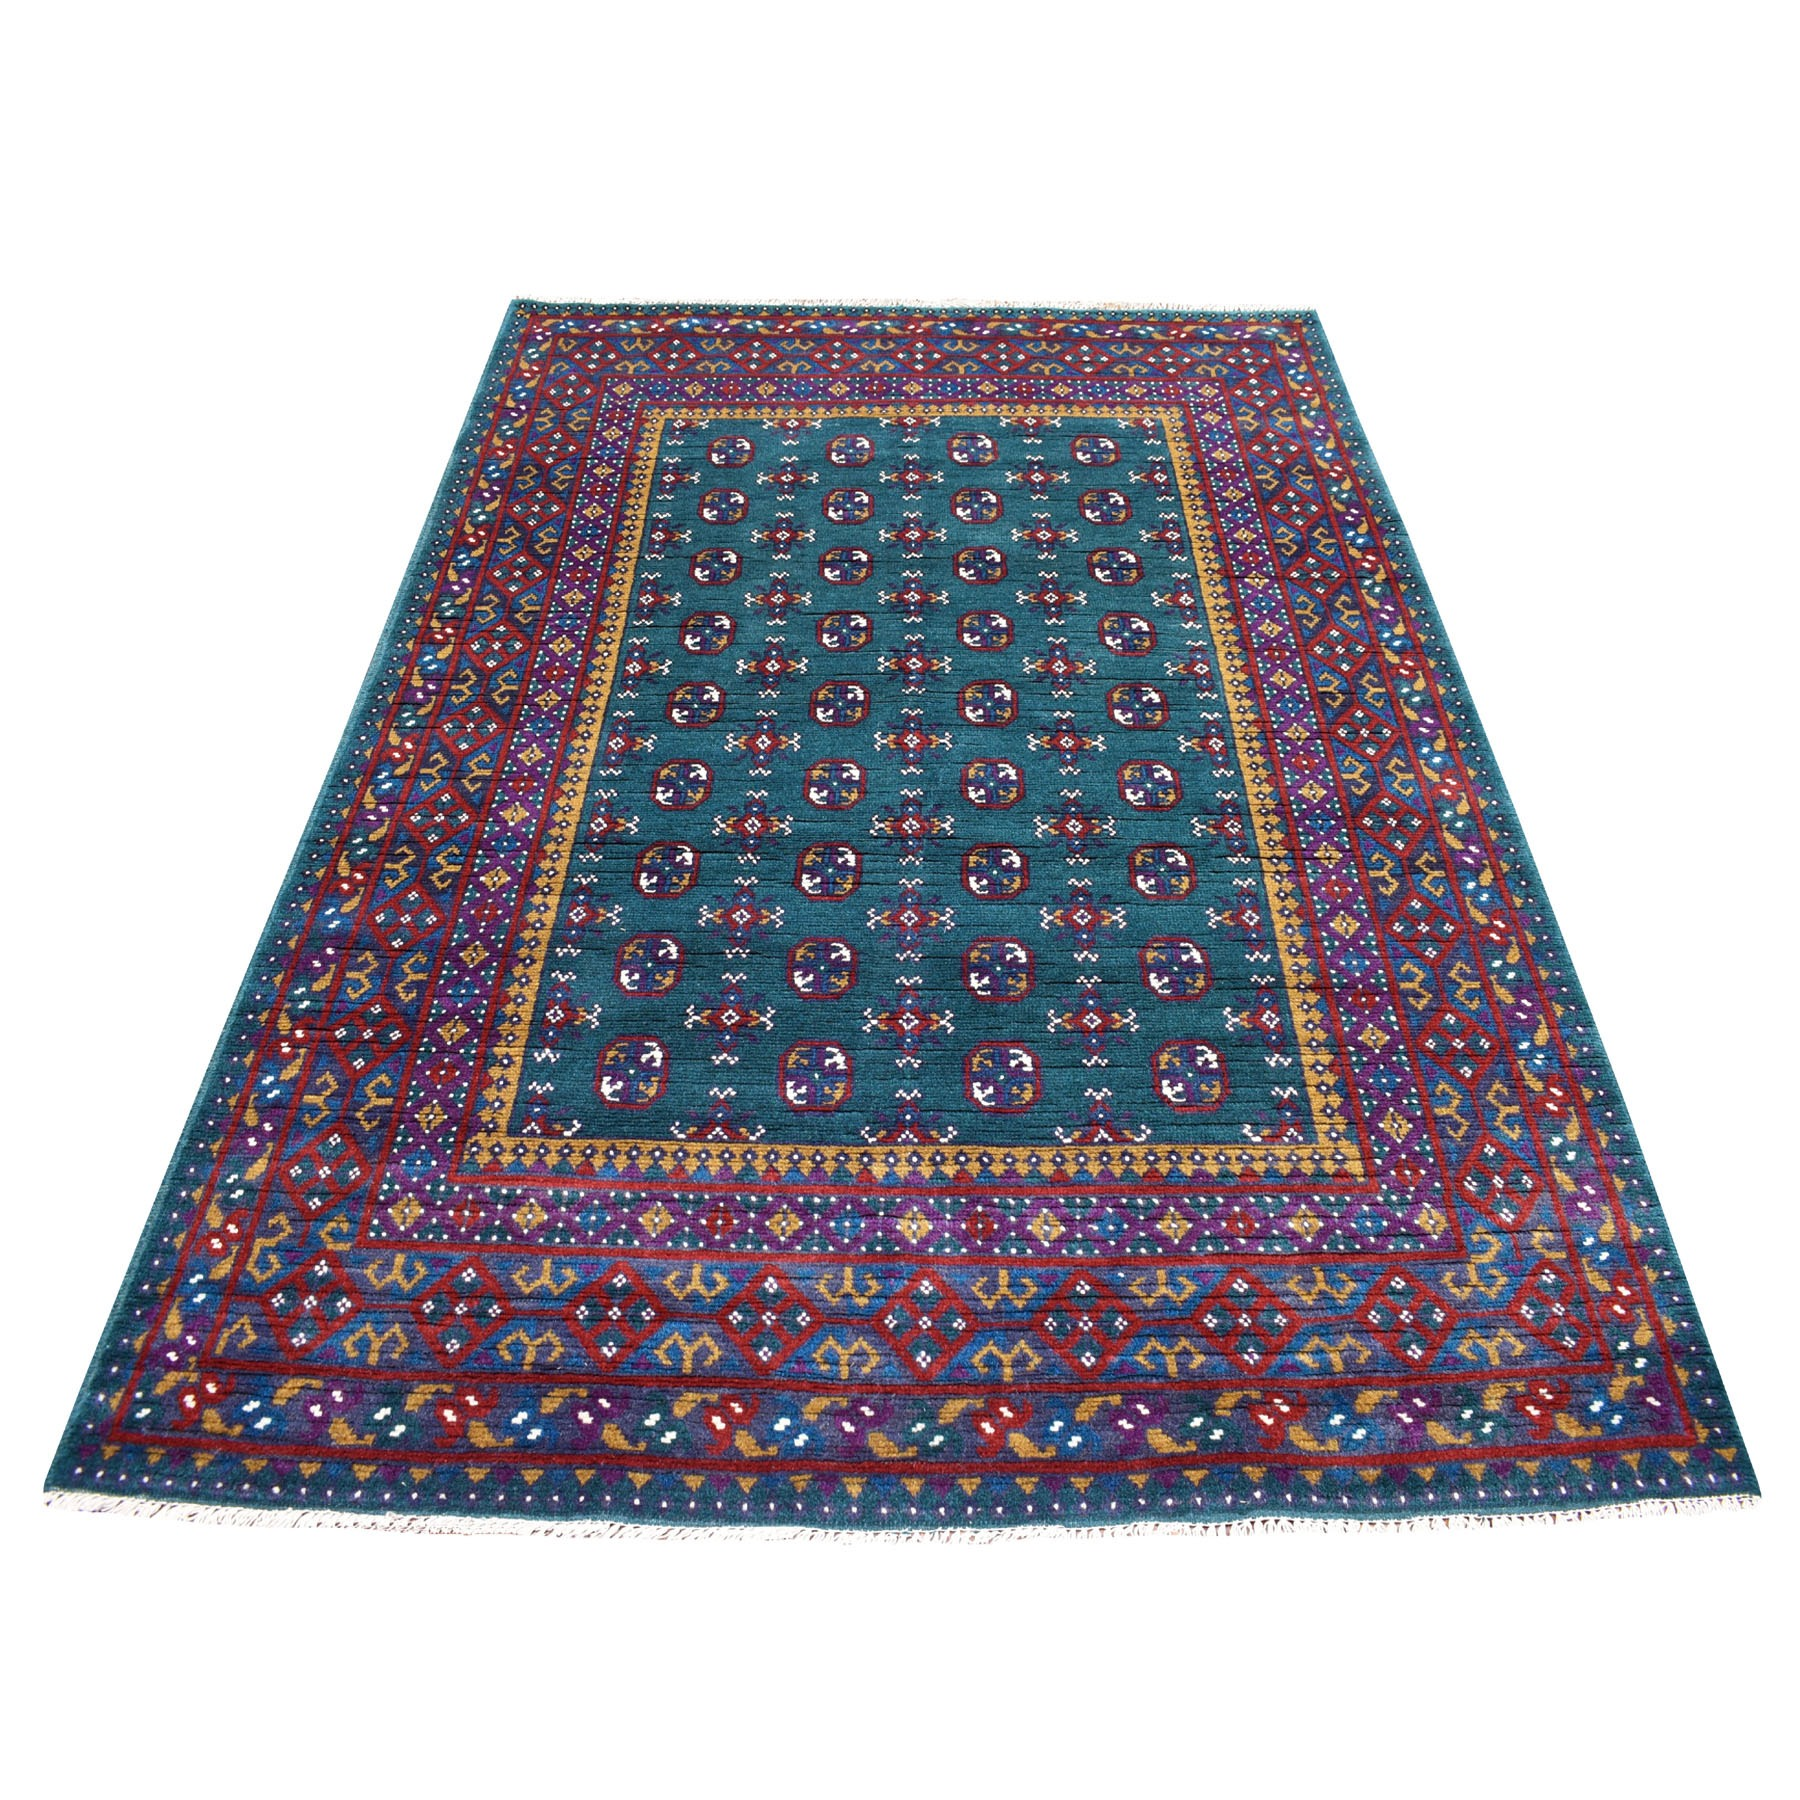 "5'5""X8' Green Natural Dyes Colorful Afghan Baluch Geometric Design Hand Knotted 100% Wool Oriental Rug moaeca6c"